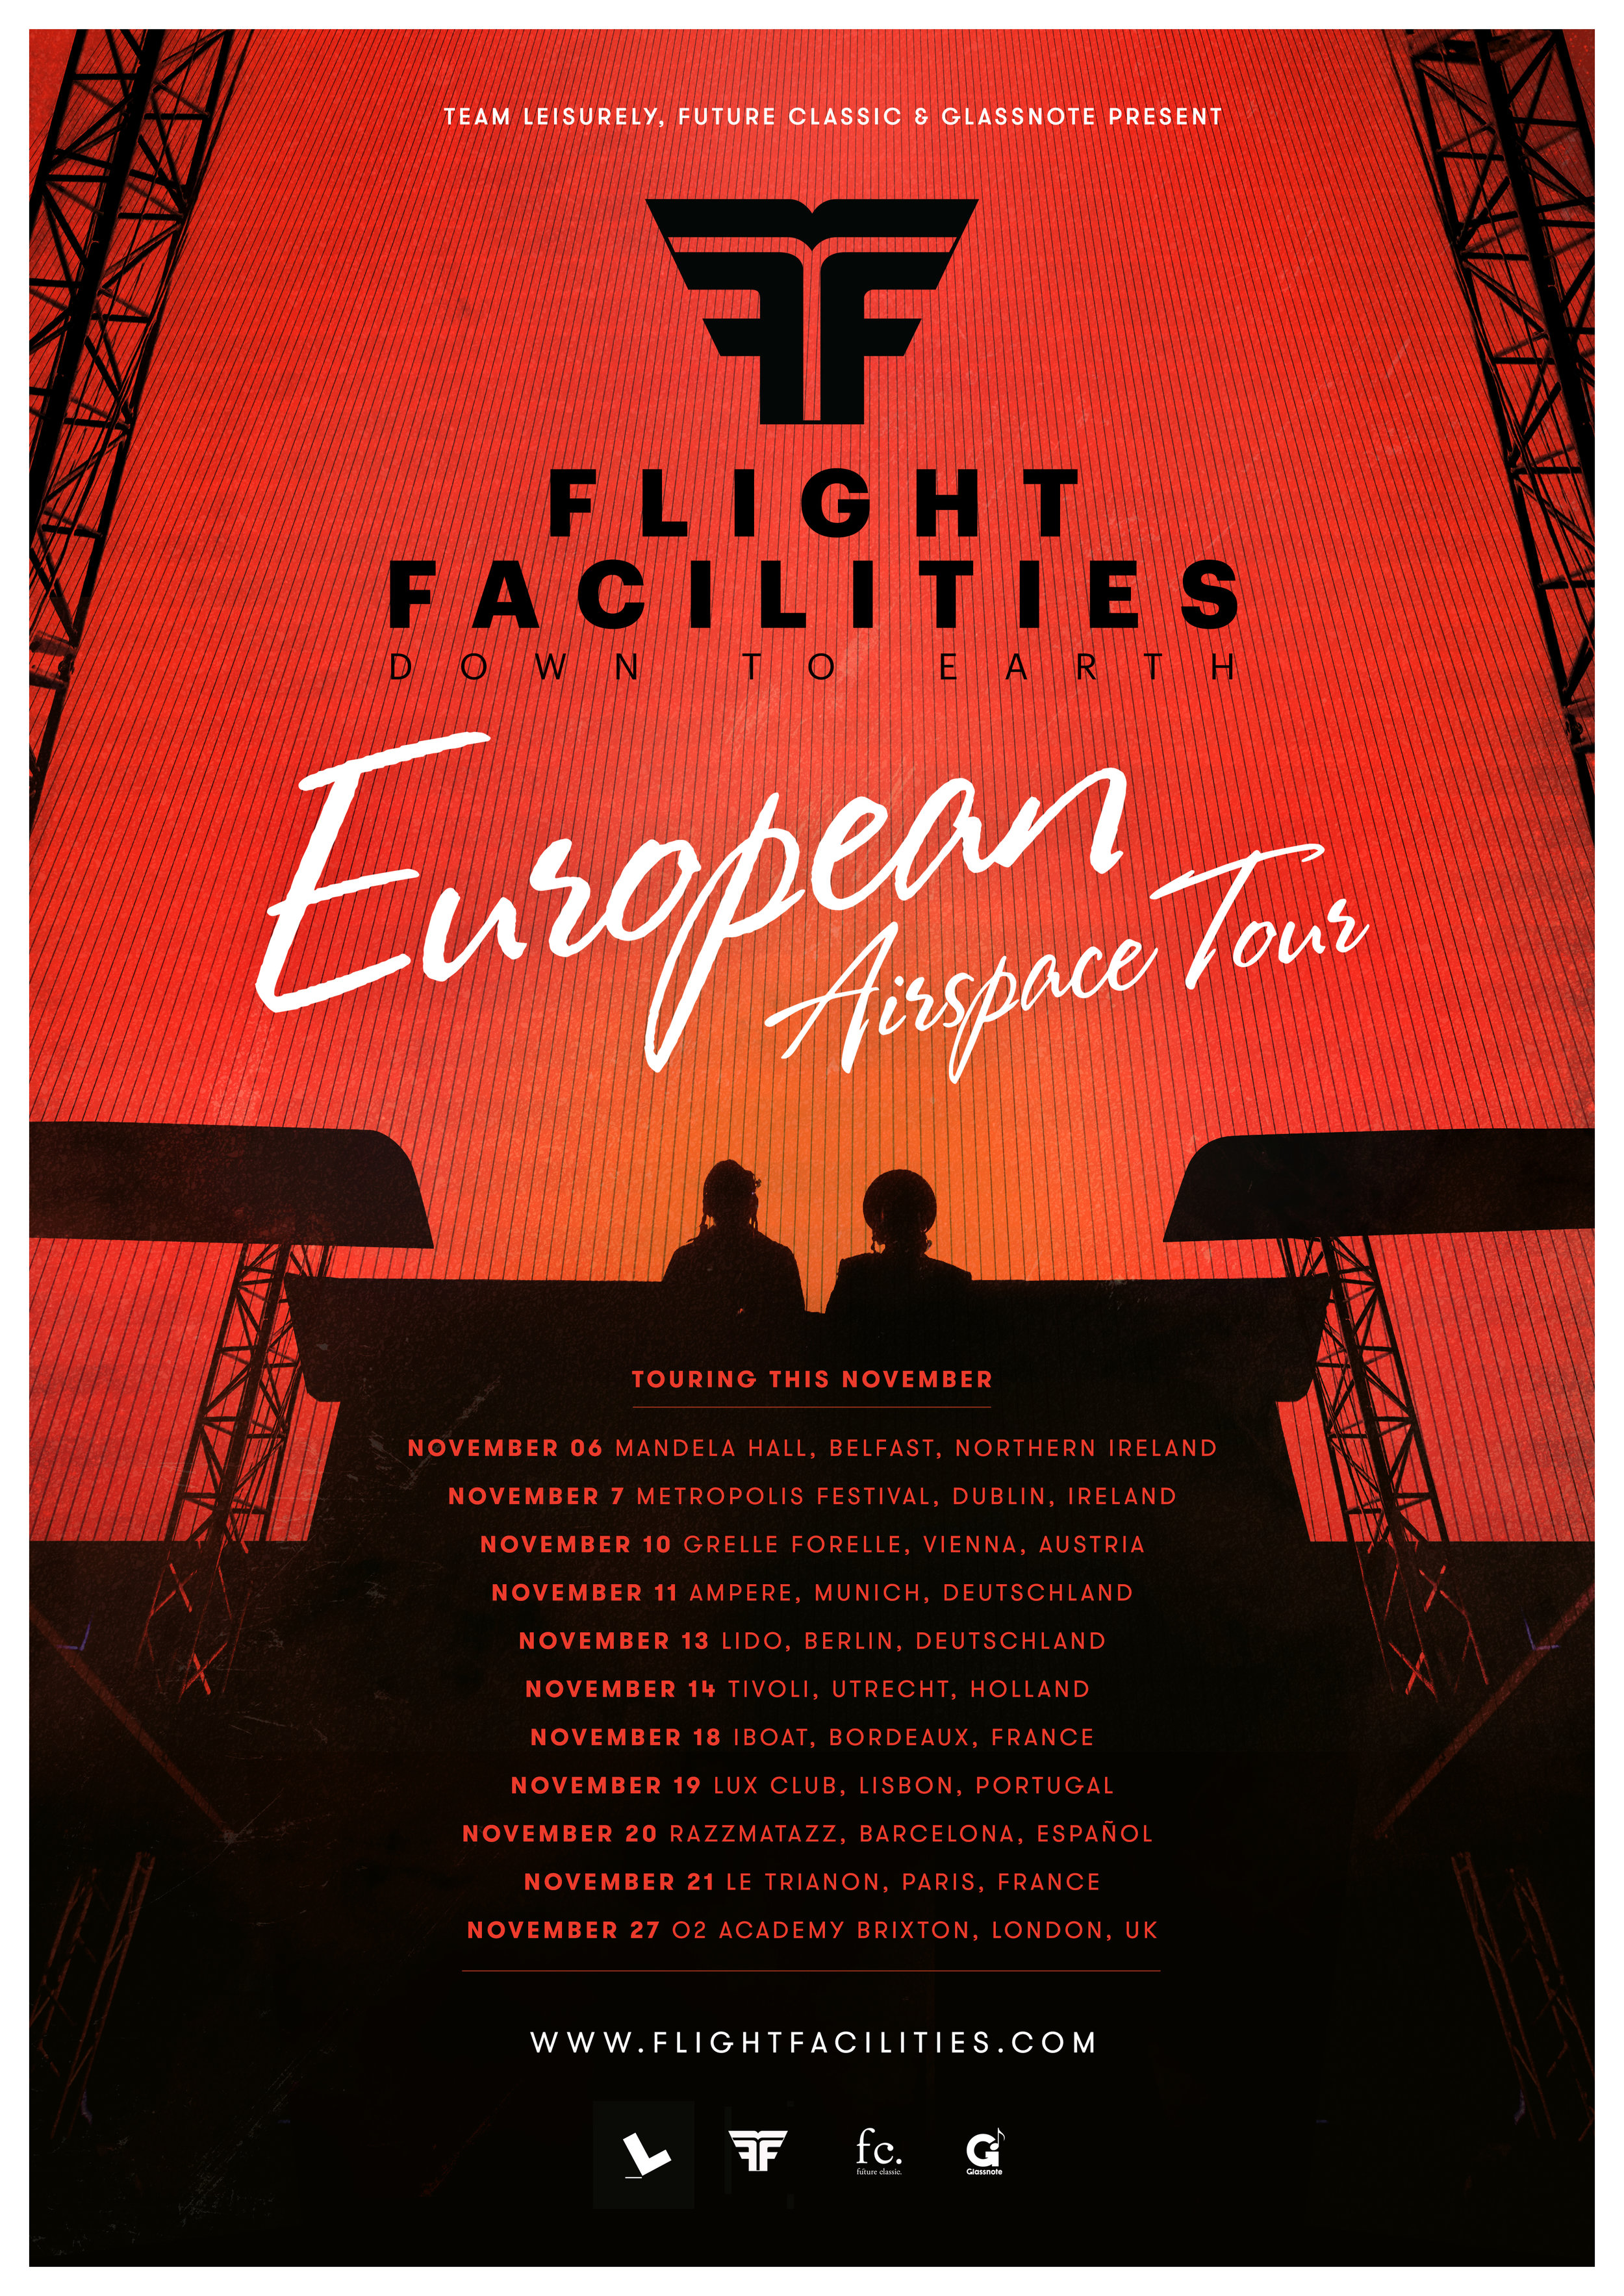 Commissioned image for Flight Facilities European tour poster.